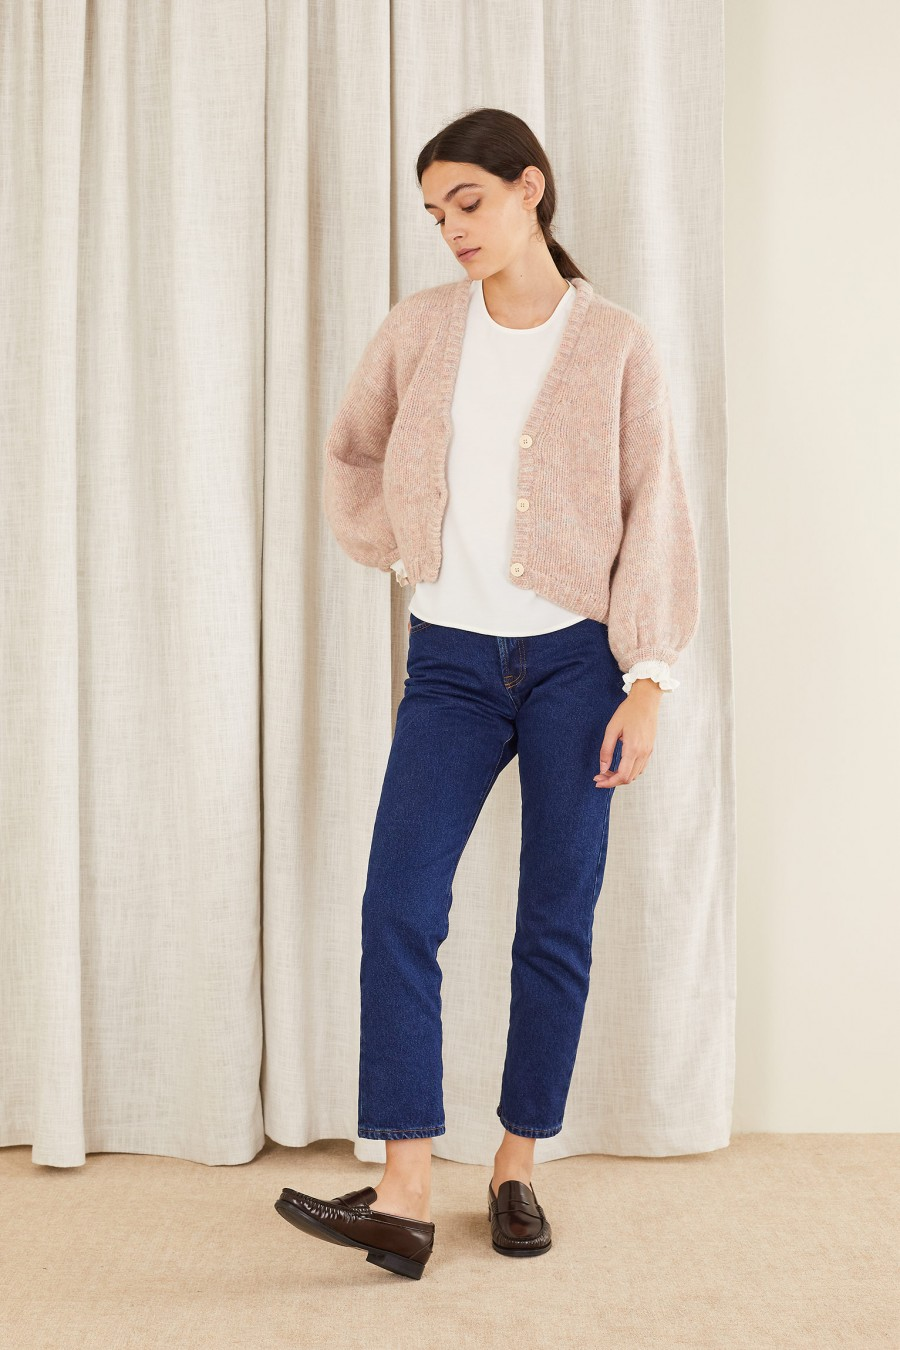 Cardigan with wide sleeves in mélange yarn